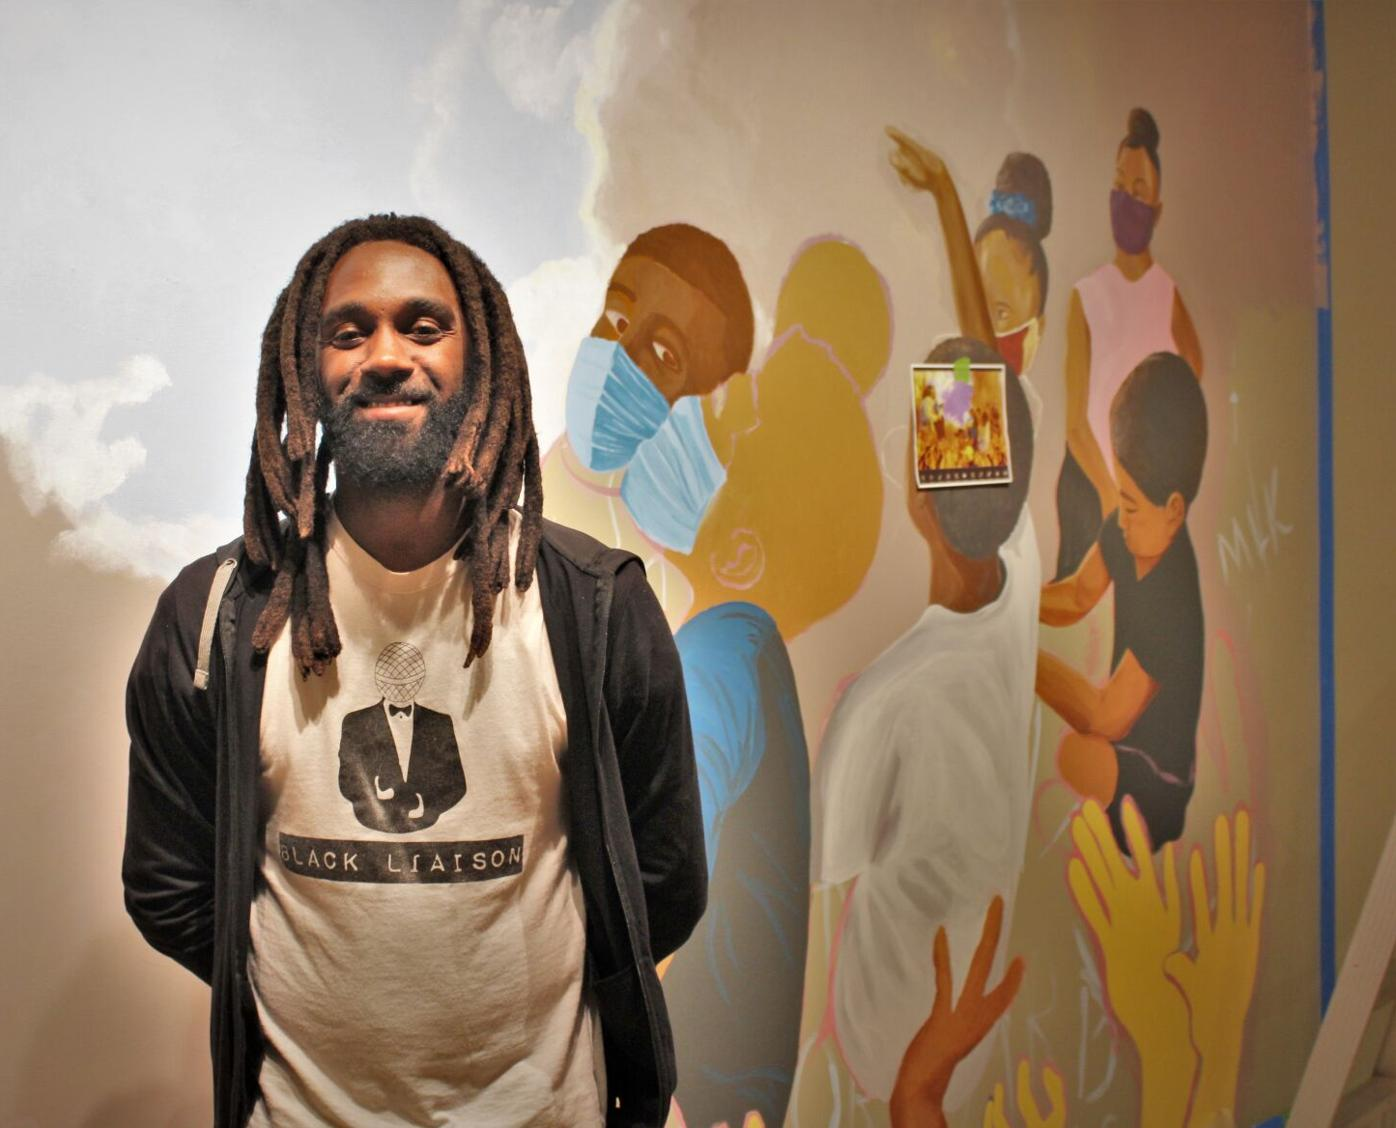 Broderick smiles in front of mural